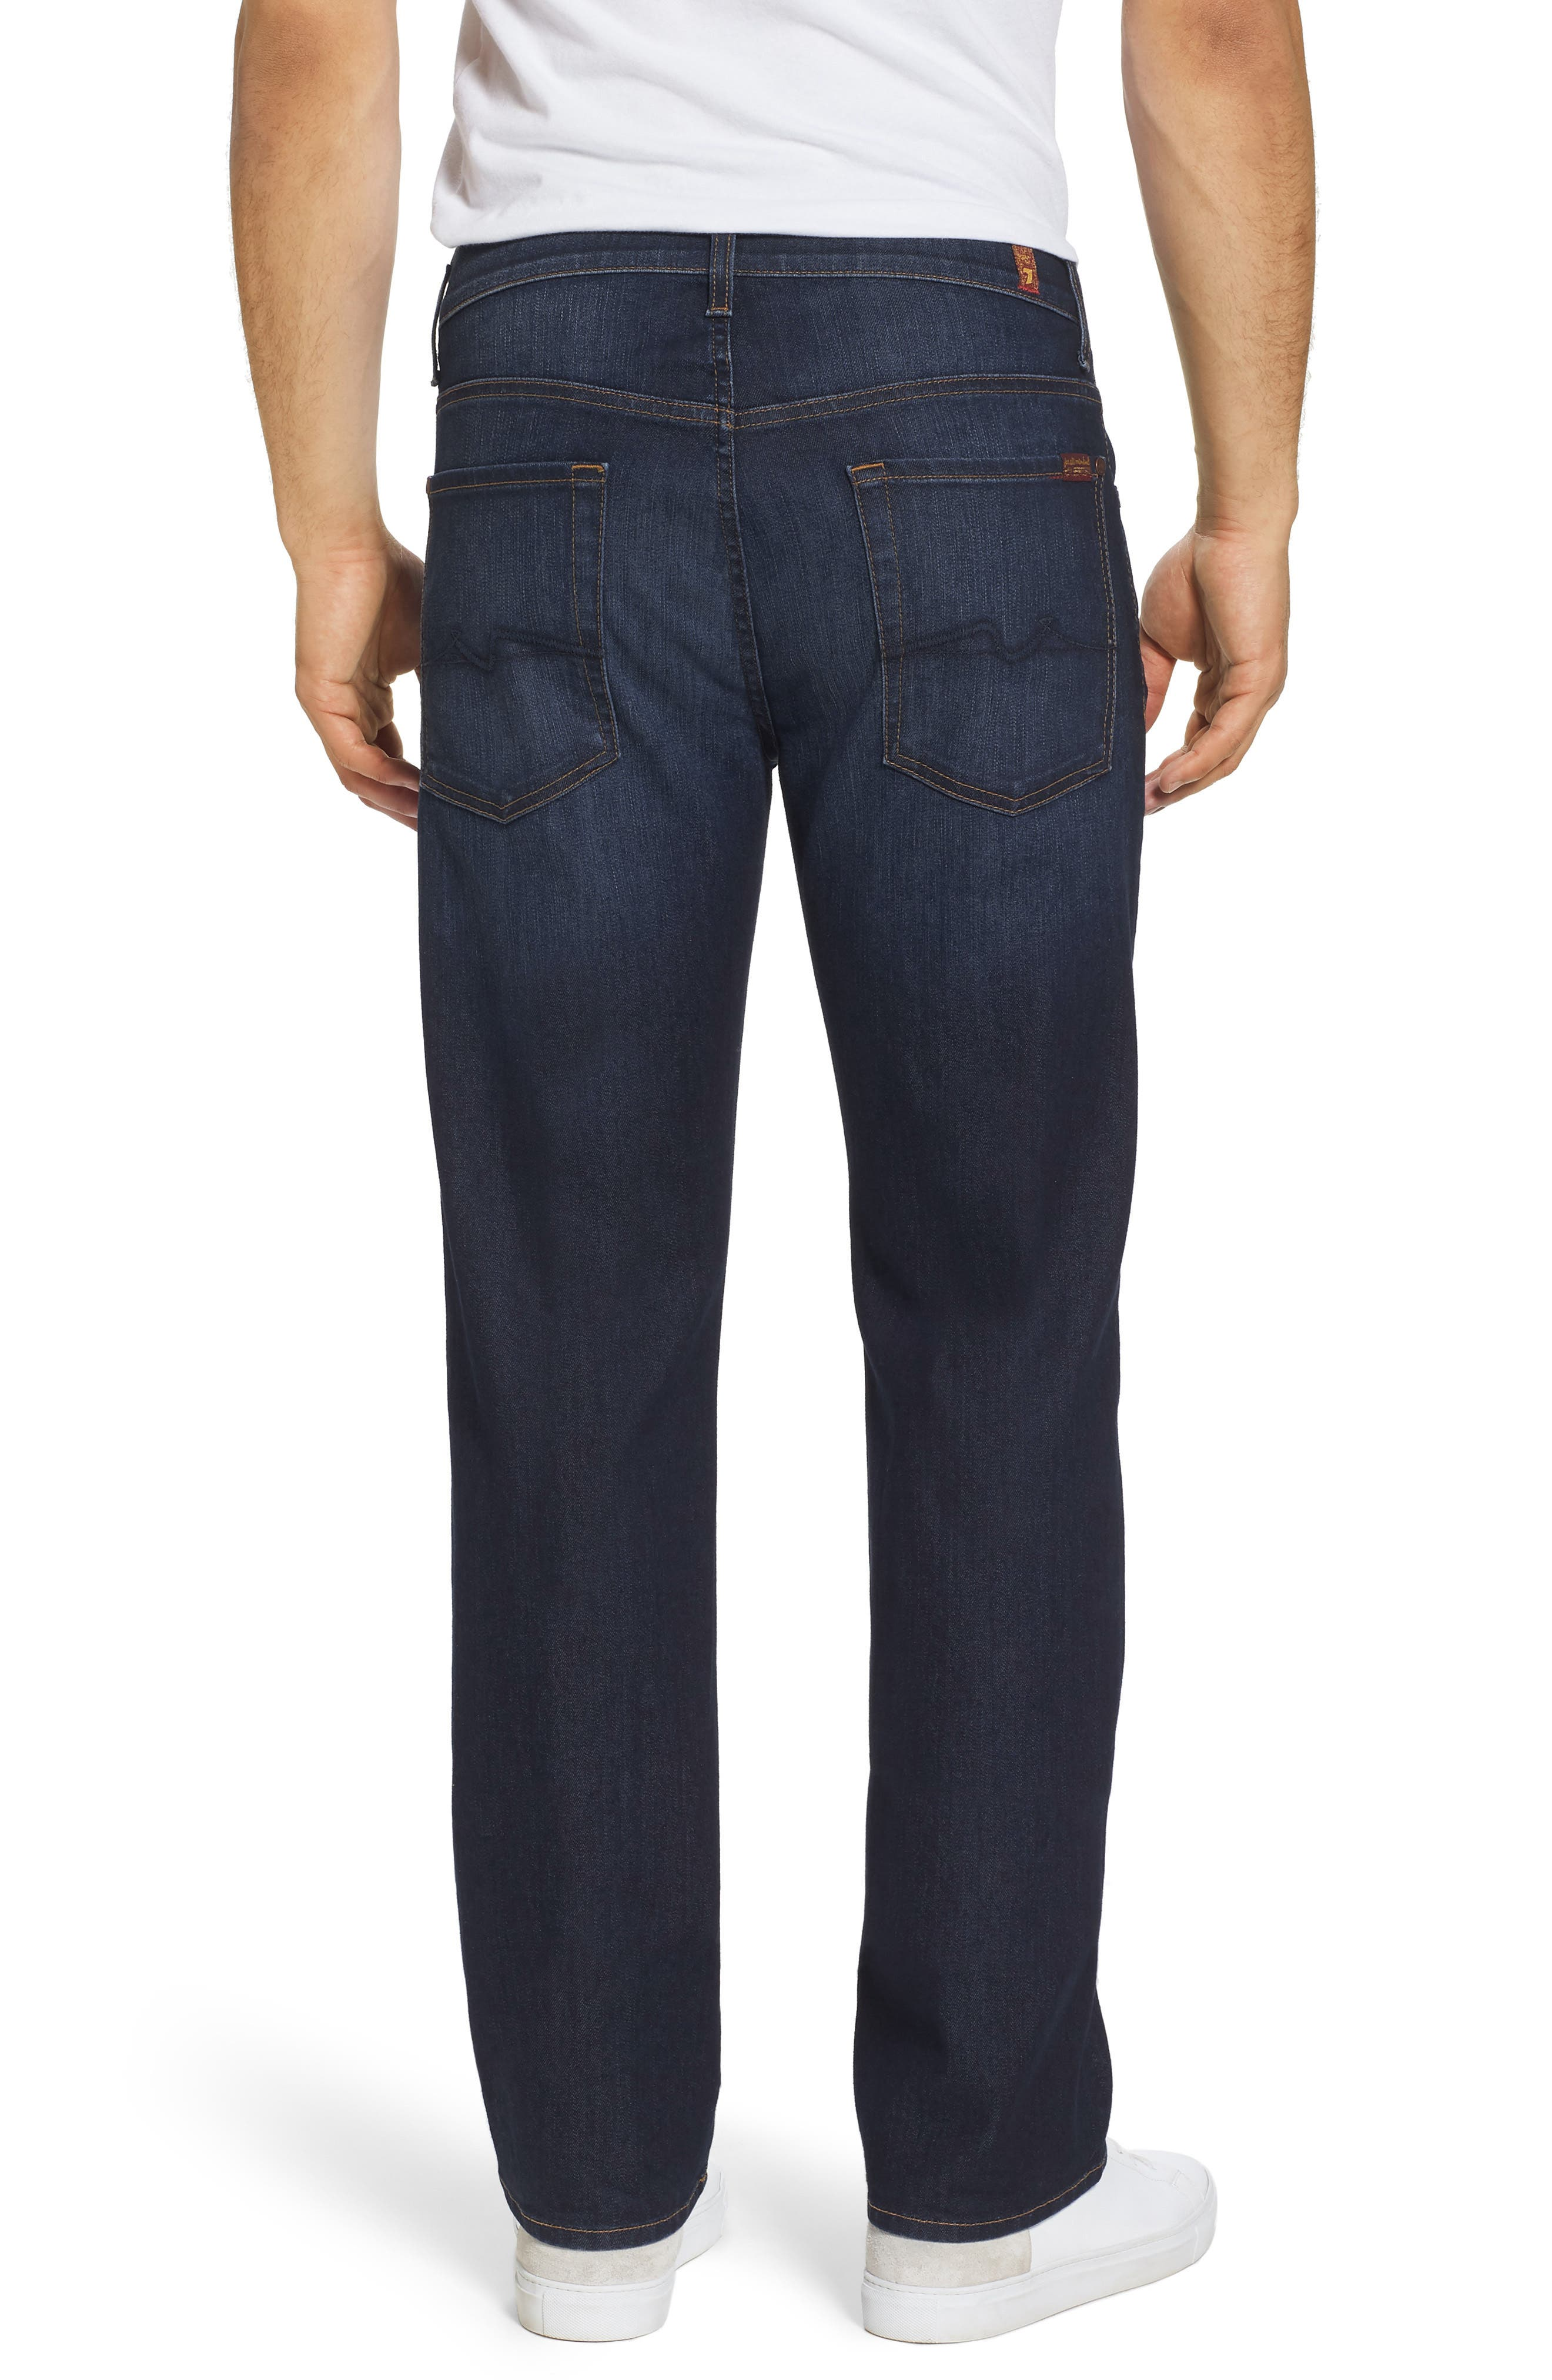 Airweft Austyn Relaxed Straight Leg Jeans,                             Alternate thumbnail 2, color,                             400